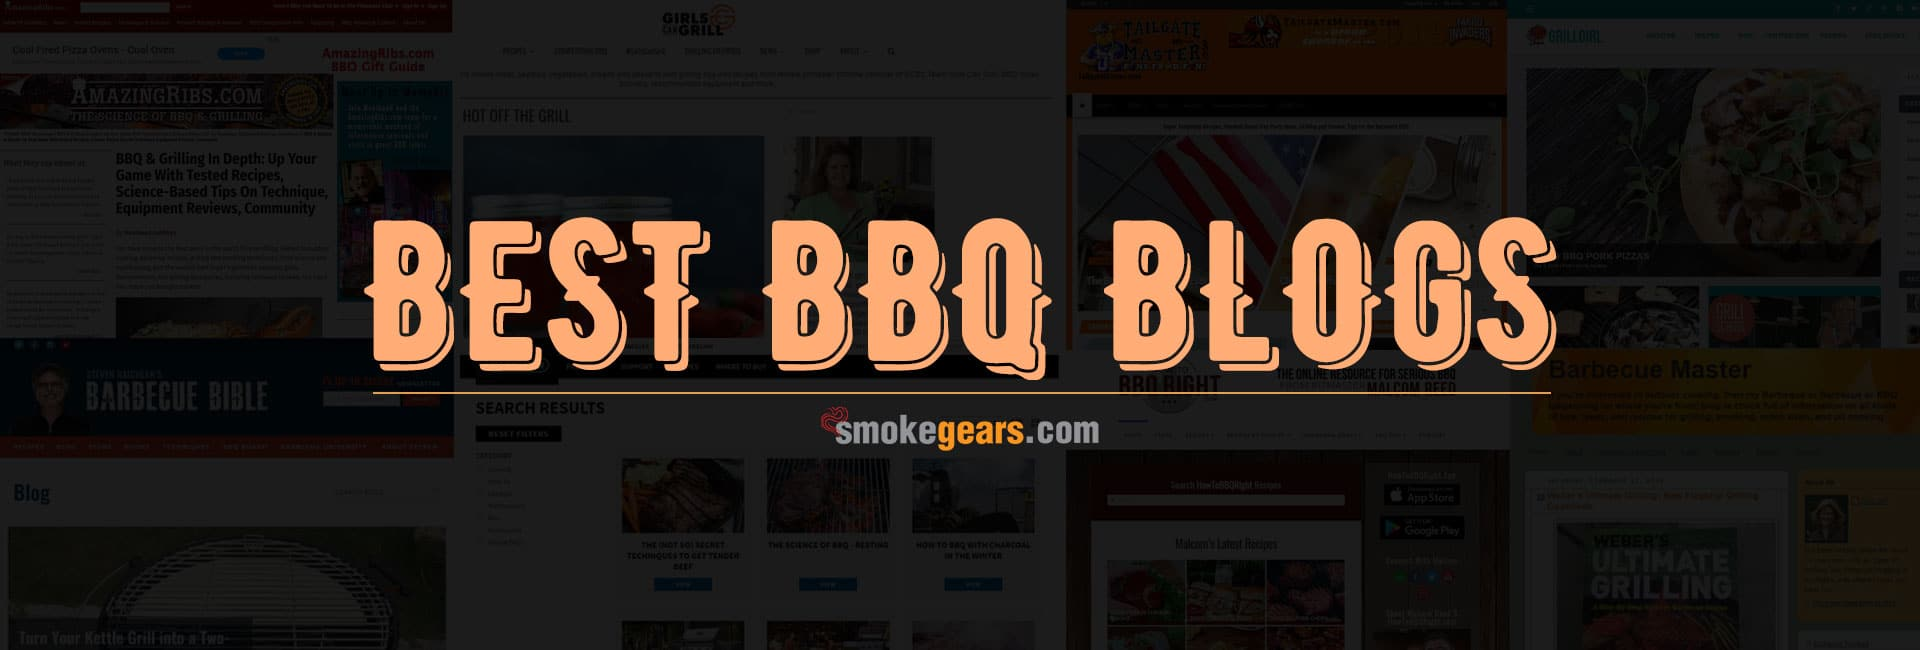 Best Barbecue Blogs